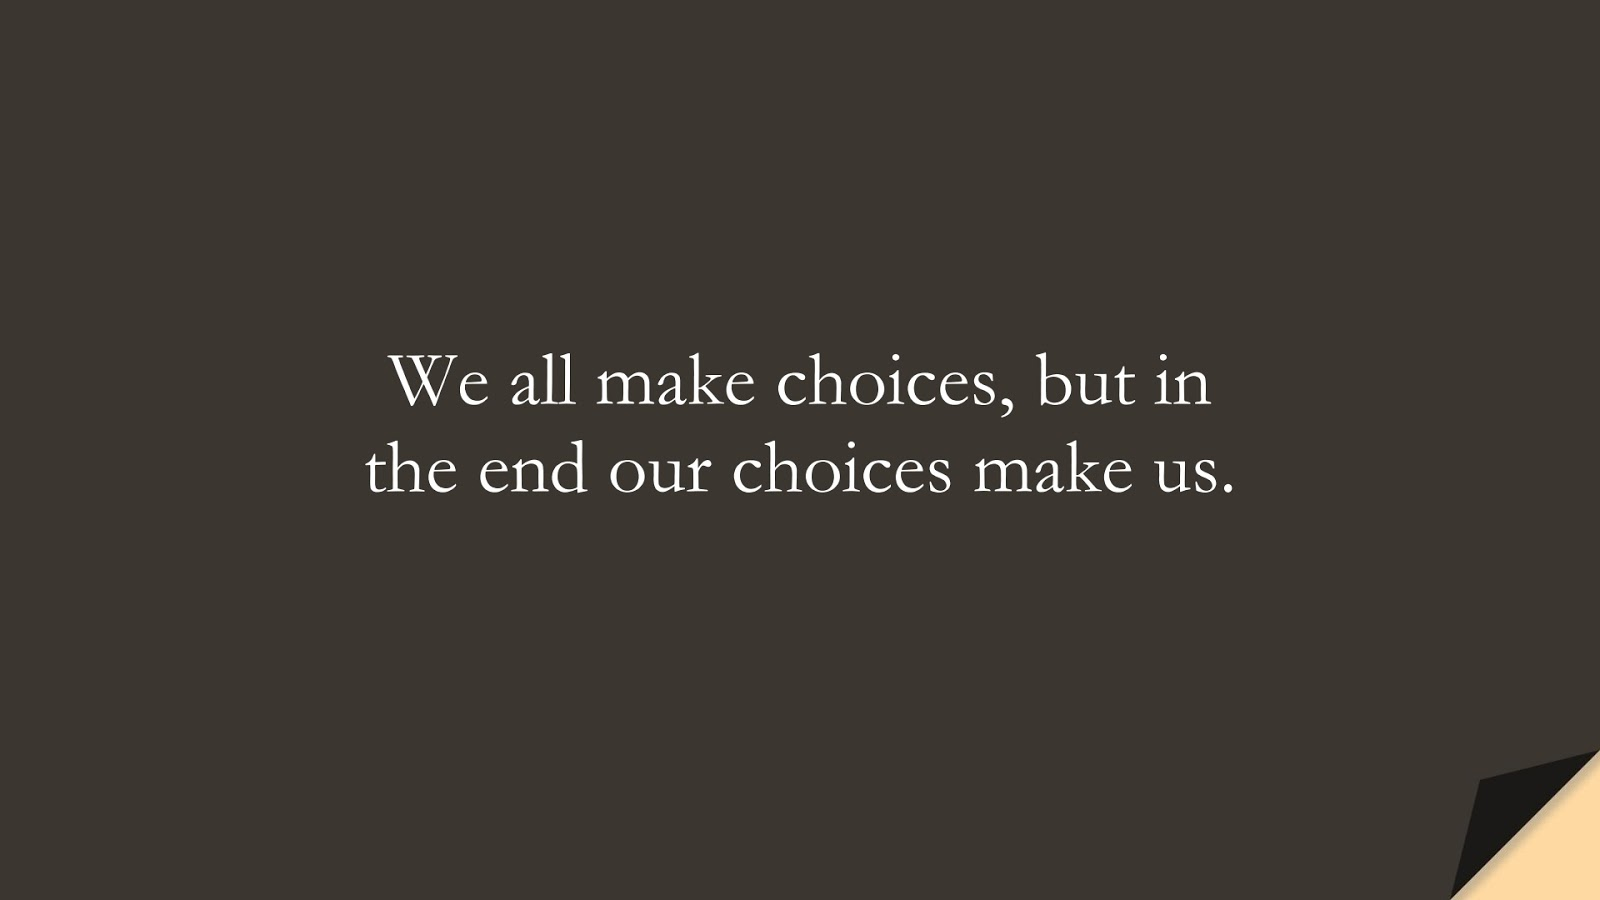 We all make choices, but in the end our choices make us.FALSE